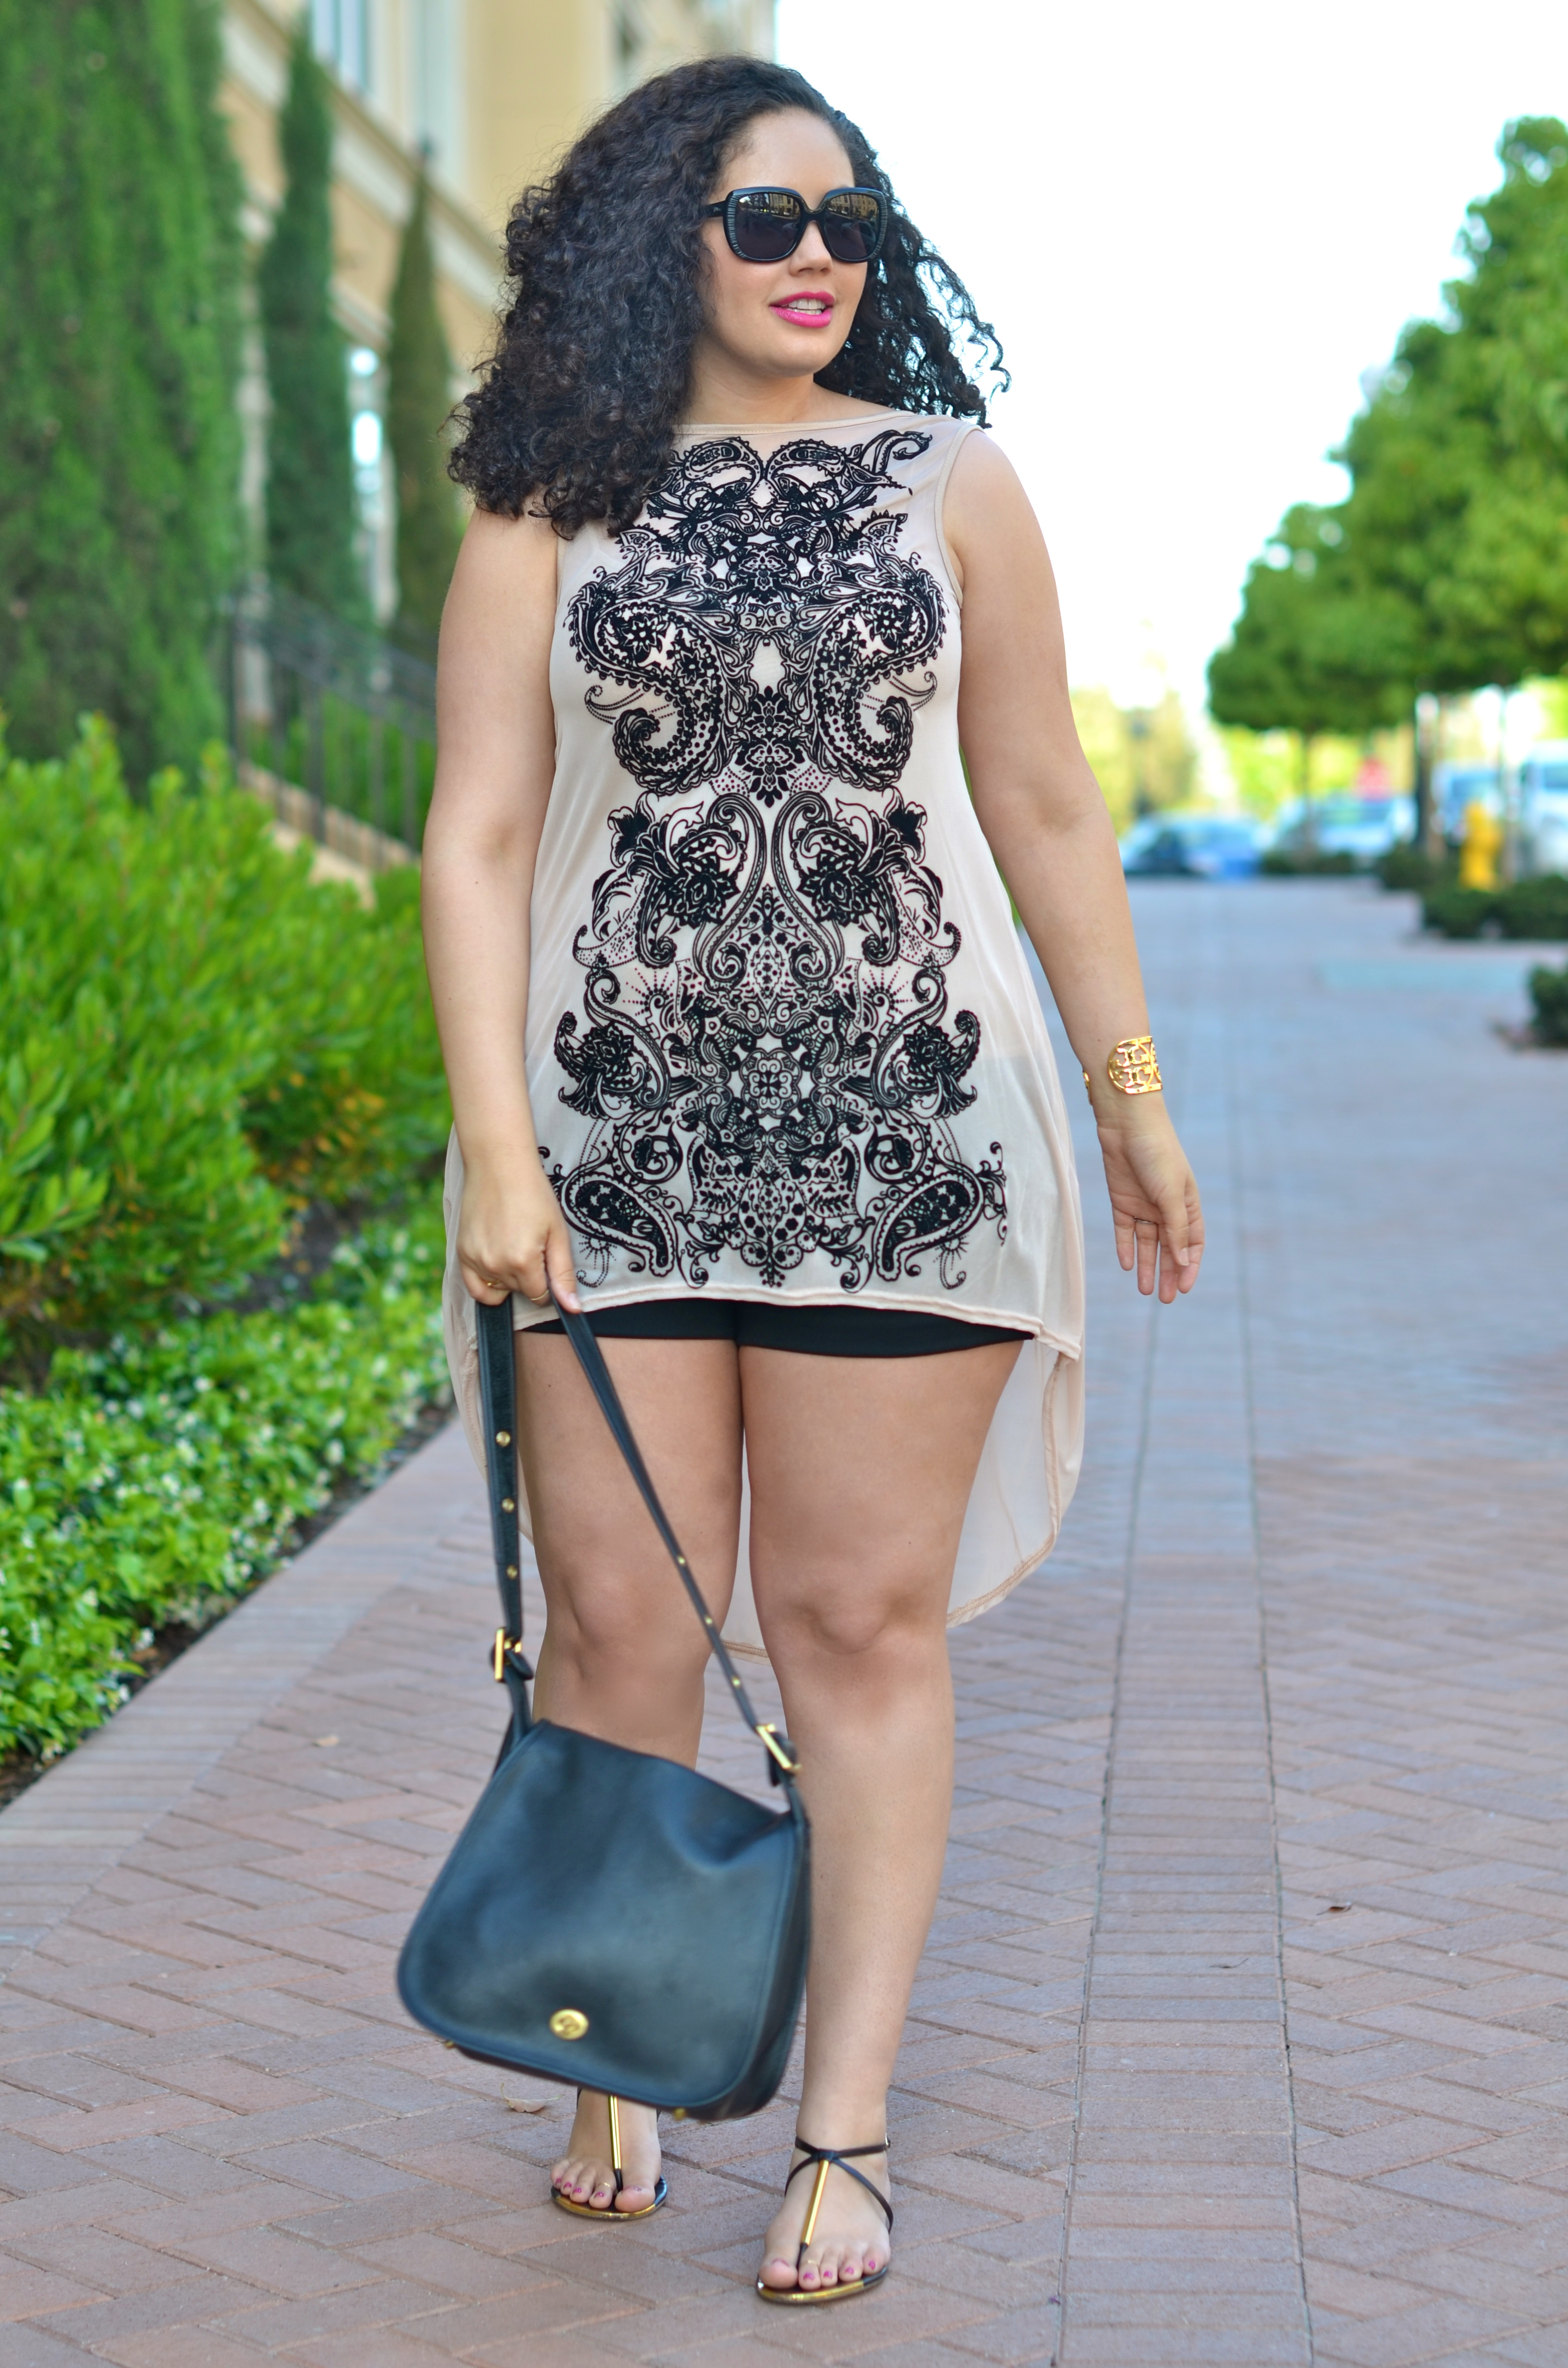 Big W School Dress Thick Thighs In Short Dresses Dress Images